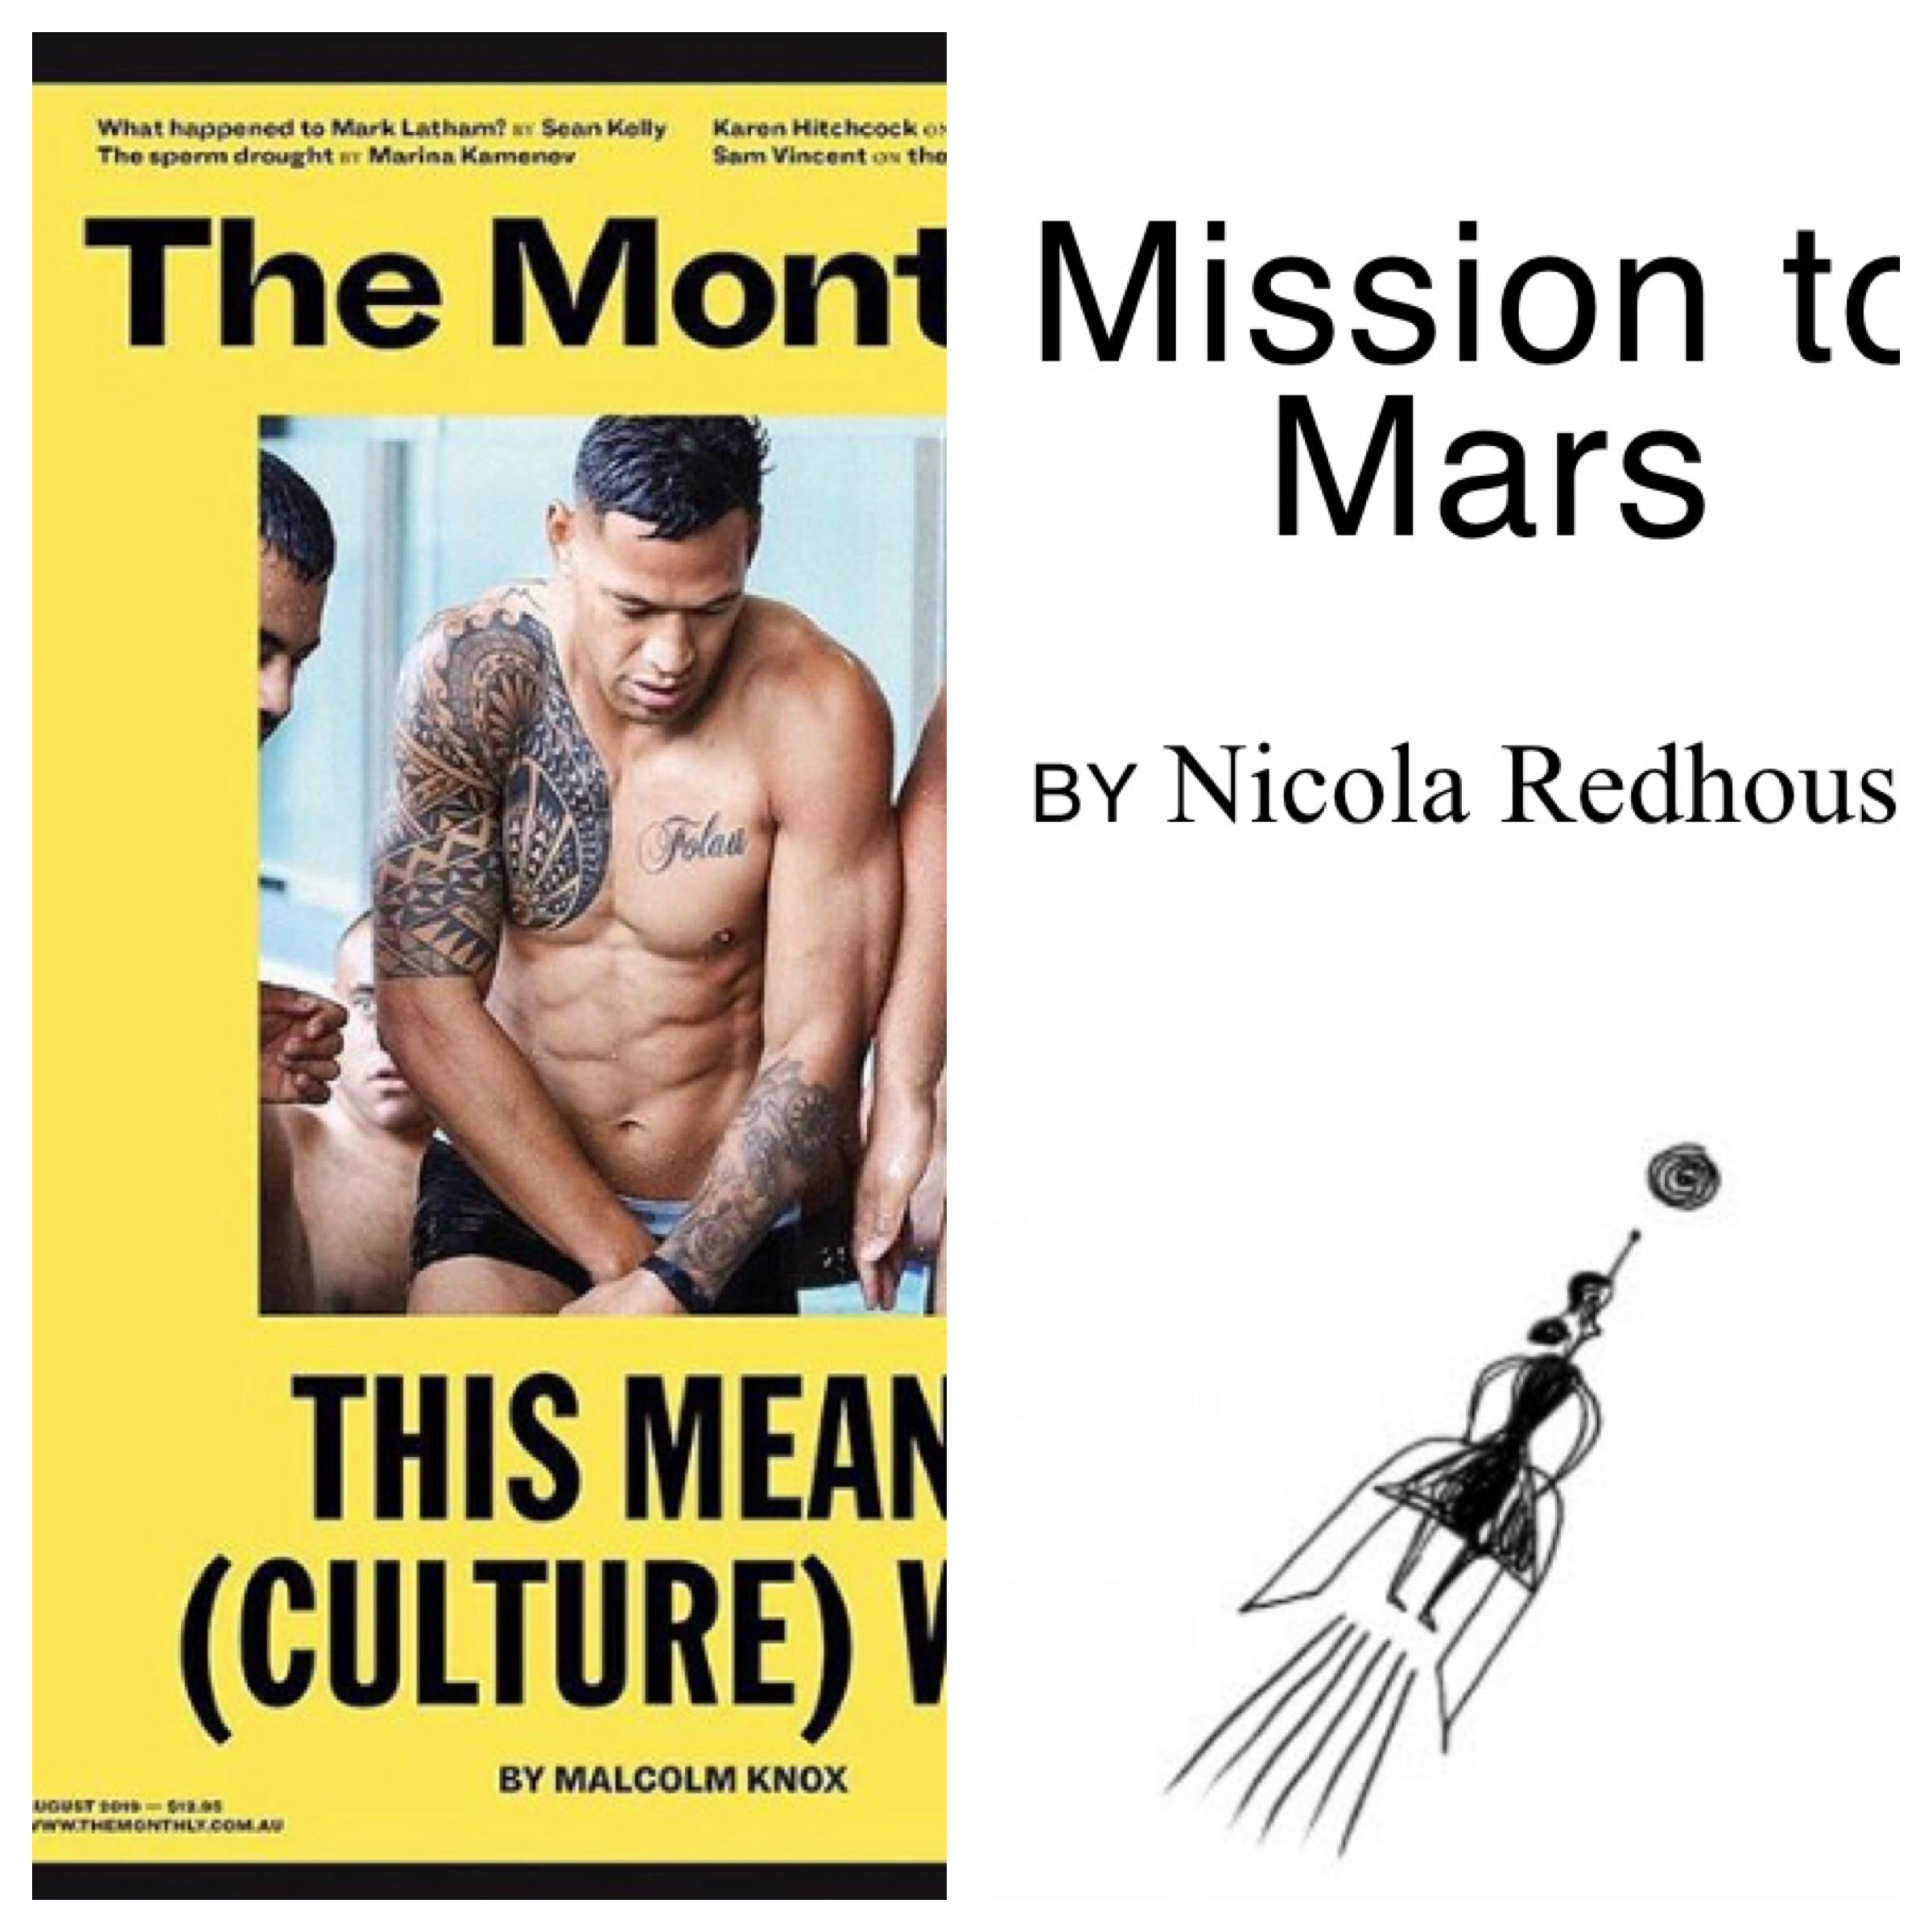 'Mission to Mars' - The Monthly, August, 2019The Australian woman on the shortlist to bid farewell to Earth forever.https://www.themonthly.com.au/issue/2019/august/1564581600/nicola-redhouse/mission-mars